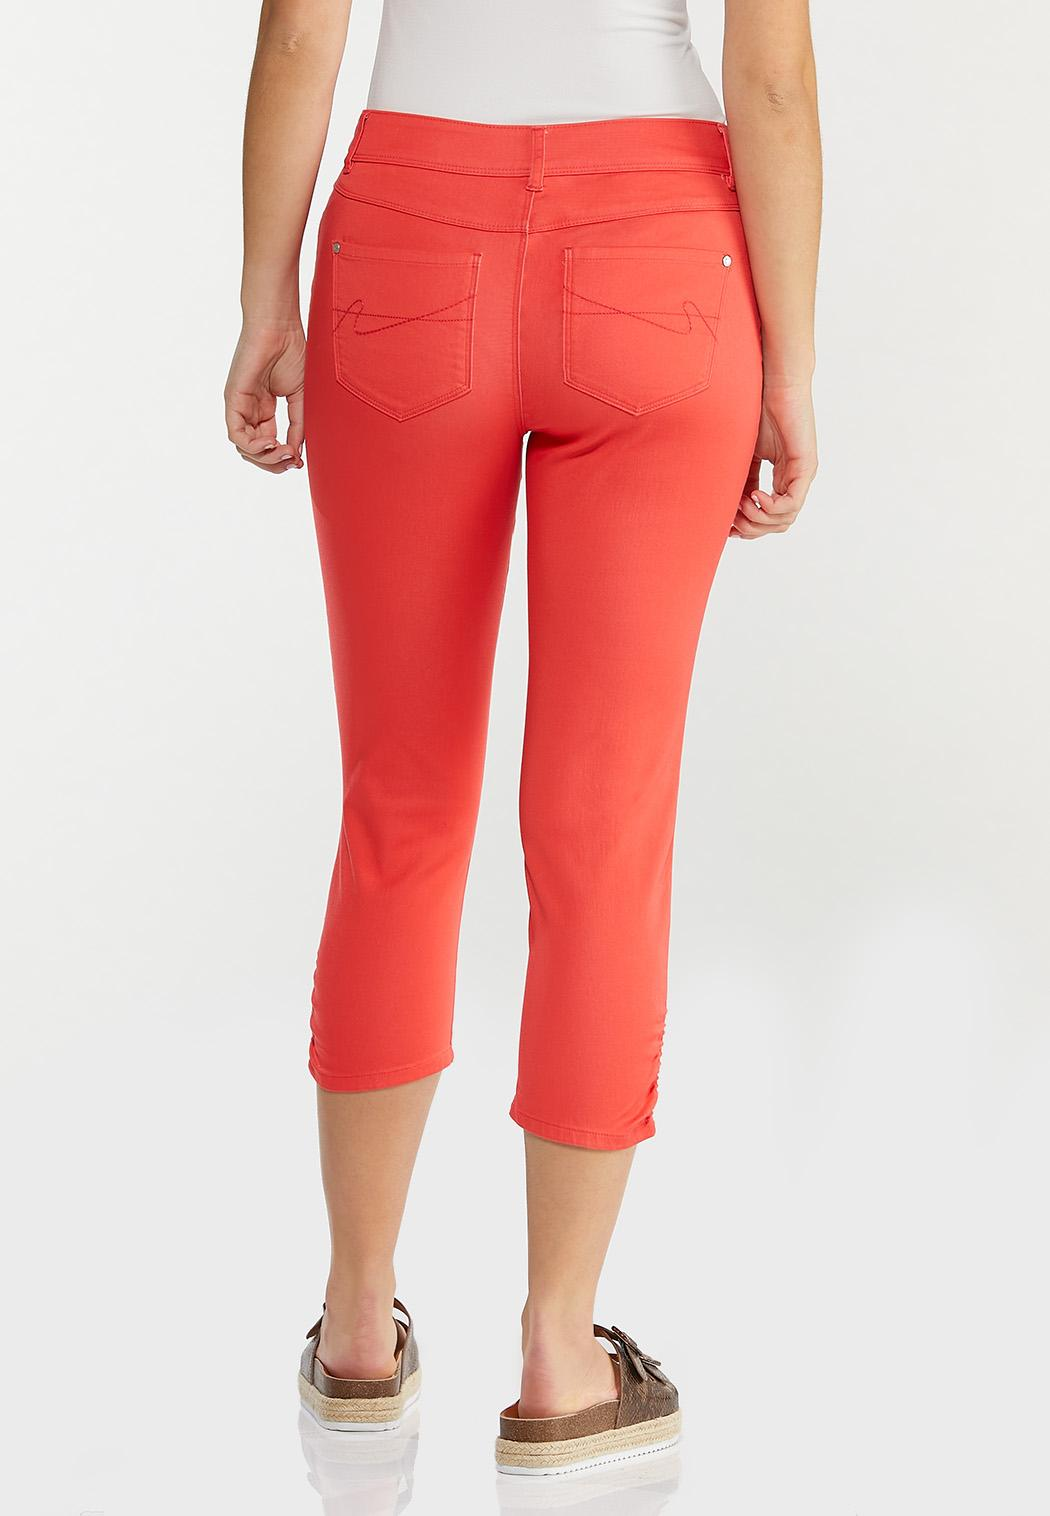 Cropped Ruched Colored Jeans (Item #44488899)